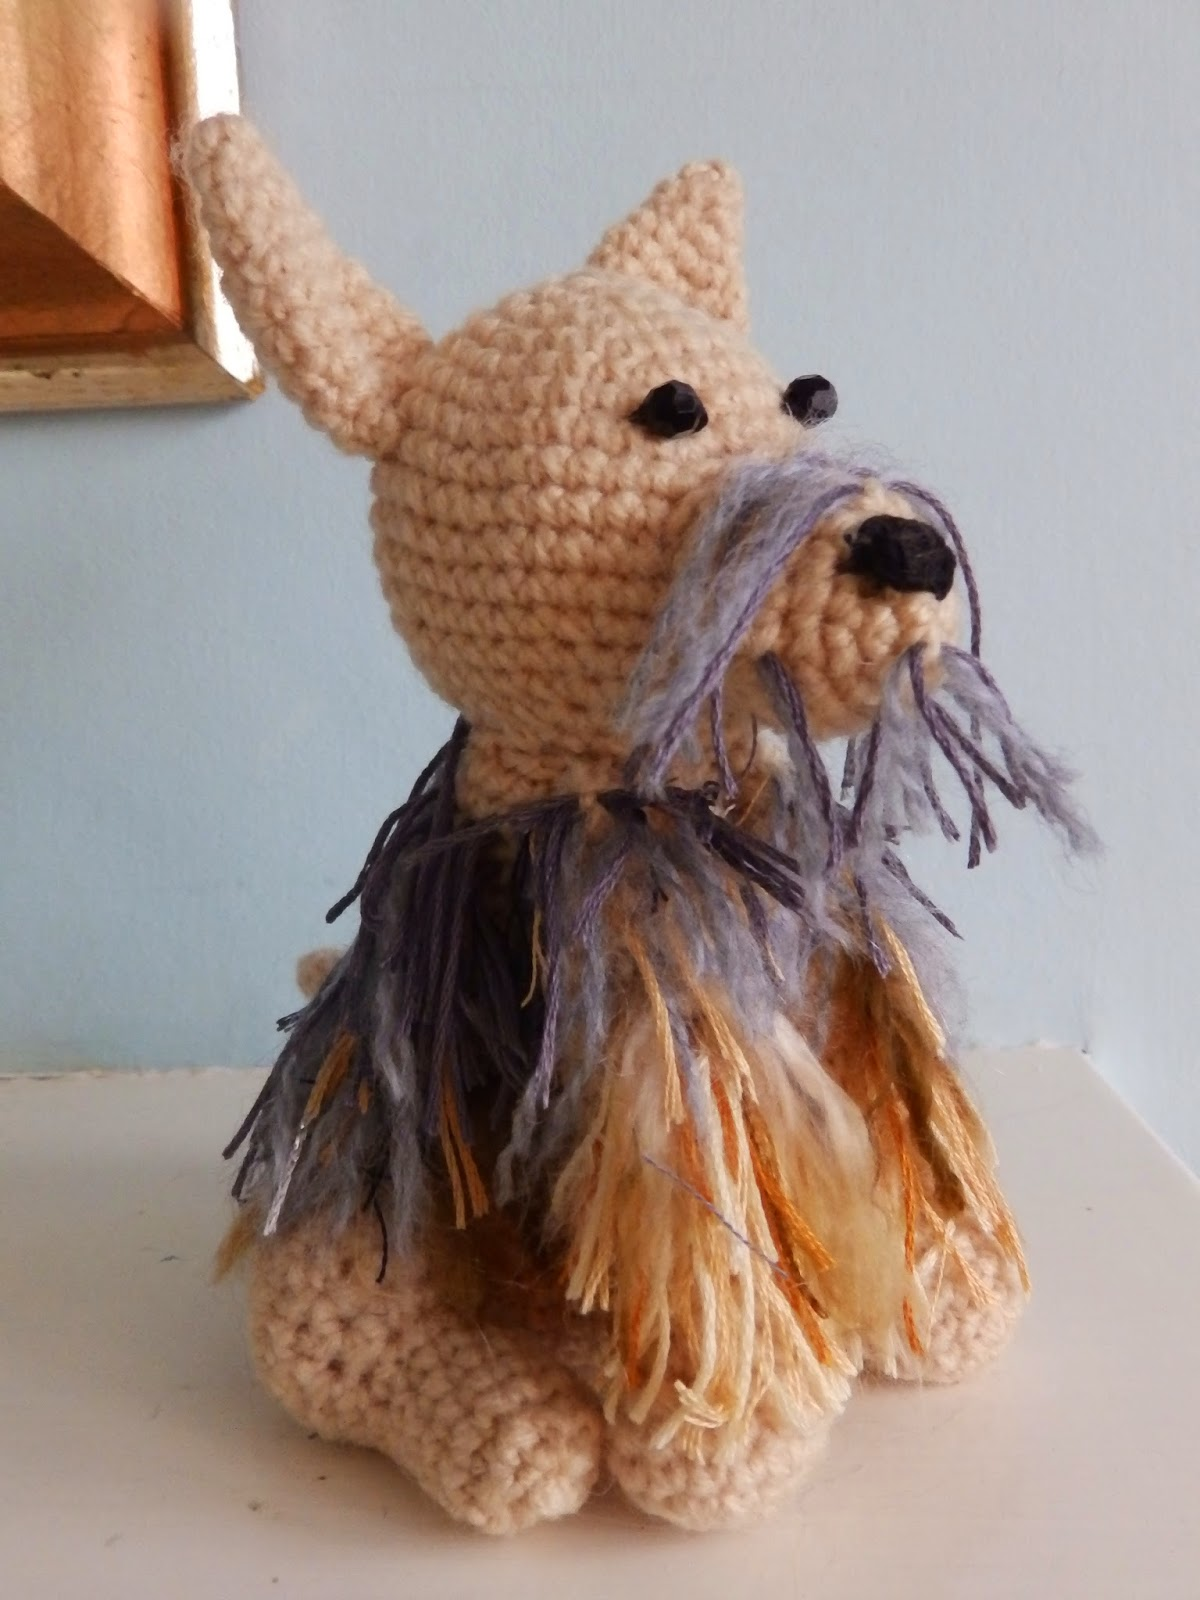 Crochet Pattern For Yorkie Dog : crafty-cats-corner: CROCHET YORKIE DOG REQUIRES LOTS OF ...